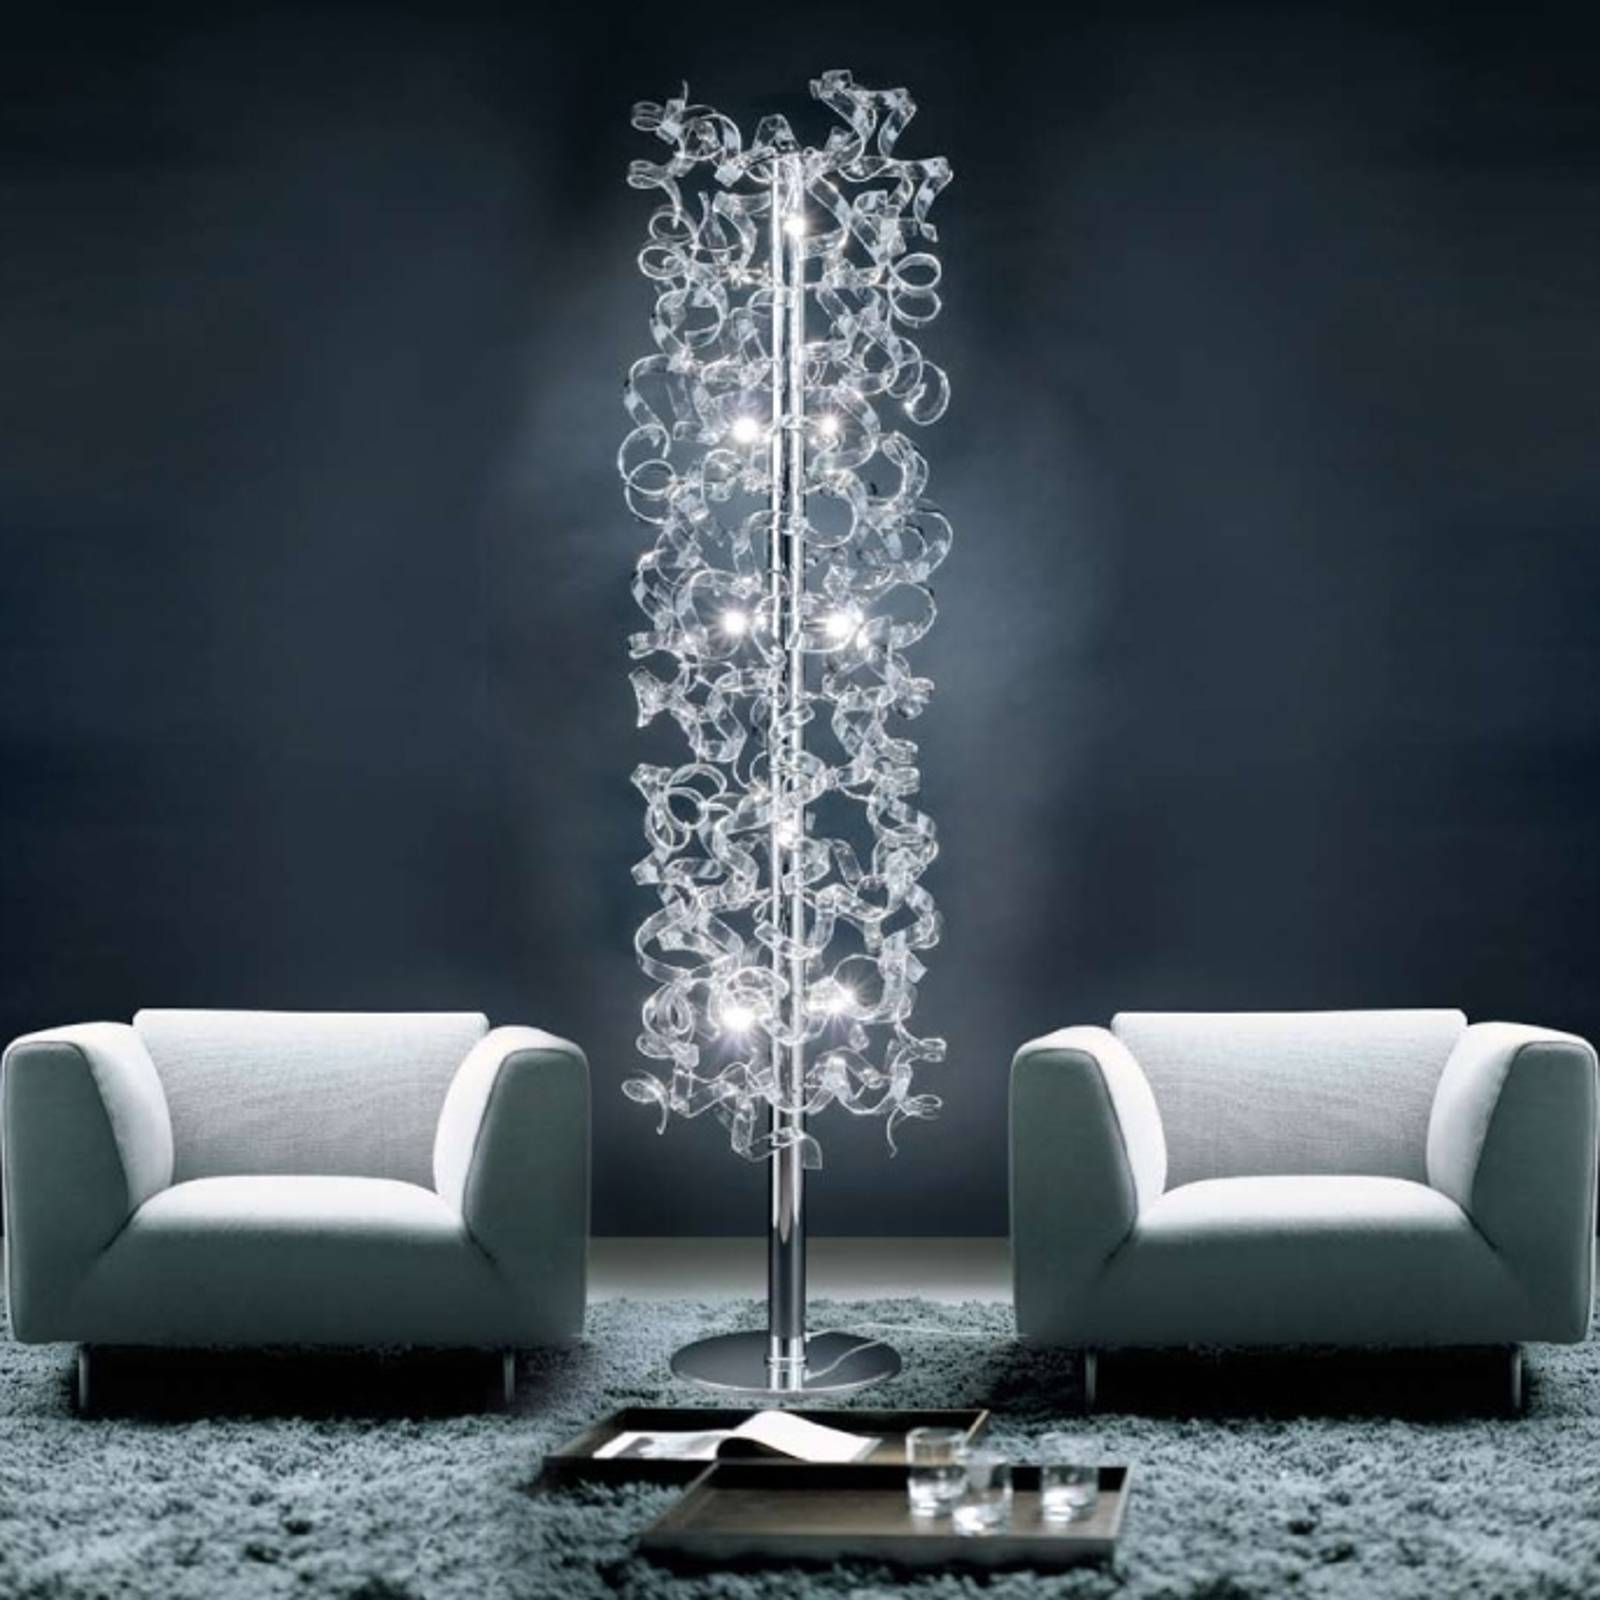 Crystal floor lamp covered in crystals from Mettallux